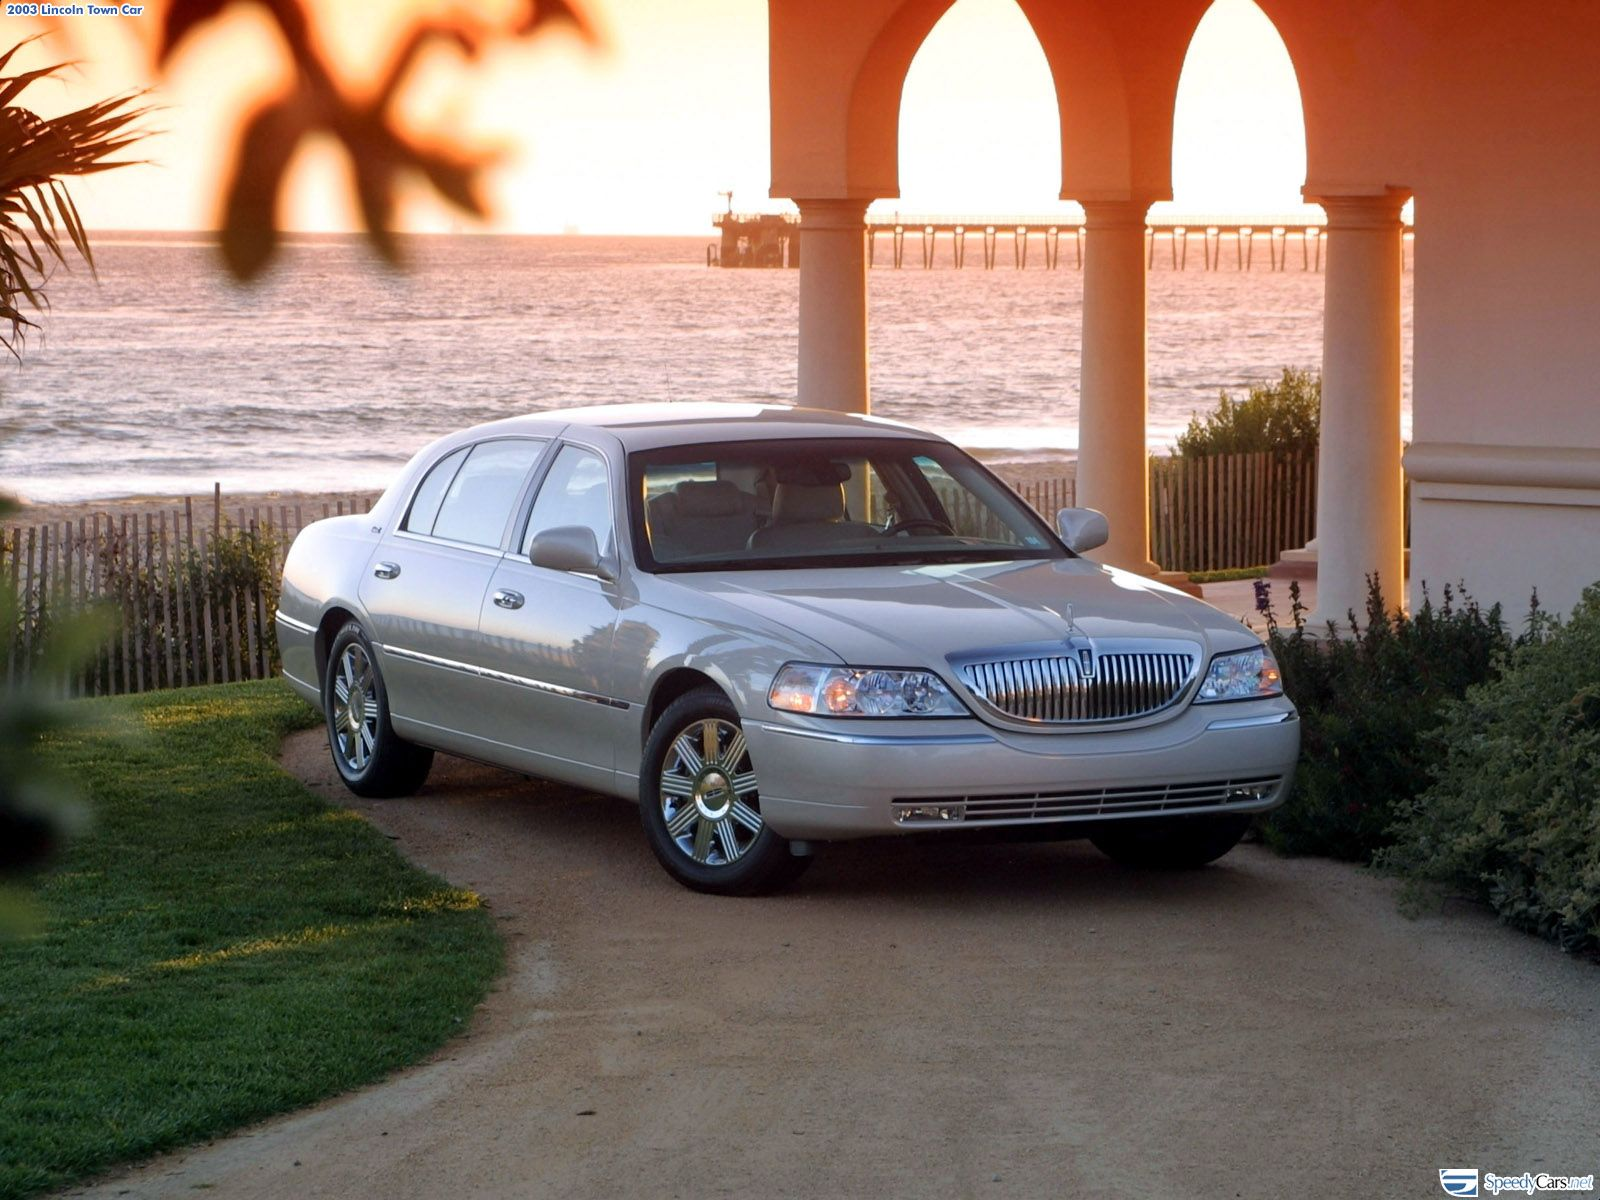 Lincoln Town Car photo 7455